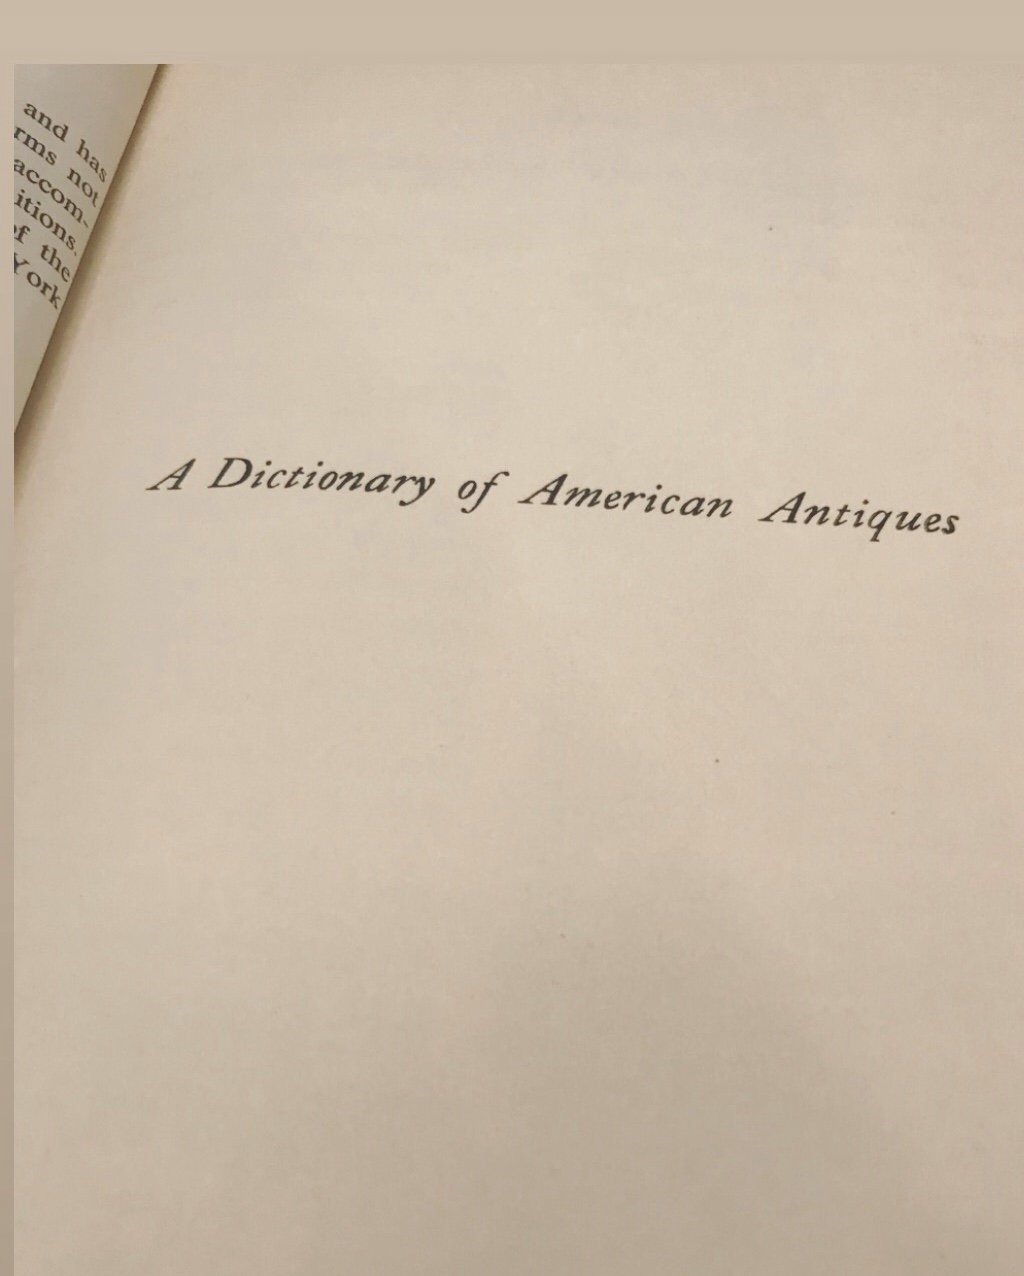 My favorite treasure of all… - This book is my favorite treasure of all: A dictionary of American Antiques. How perfect for my mom! Looking through this book before mailing it to her was so fun. I learned so much about early American architecture, decor, it's meaning, and history.